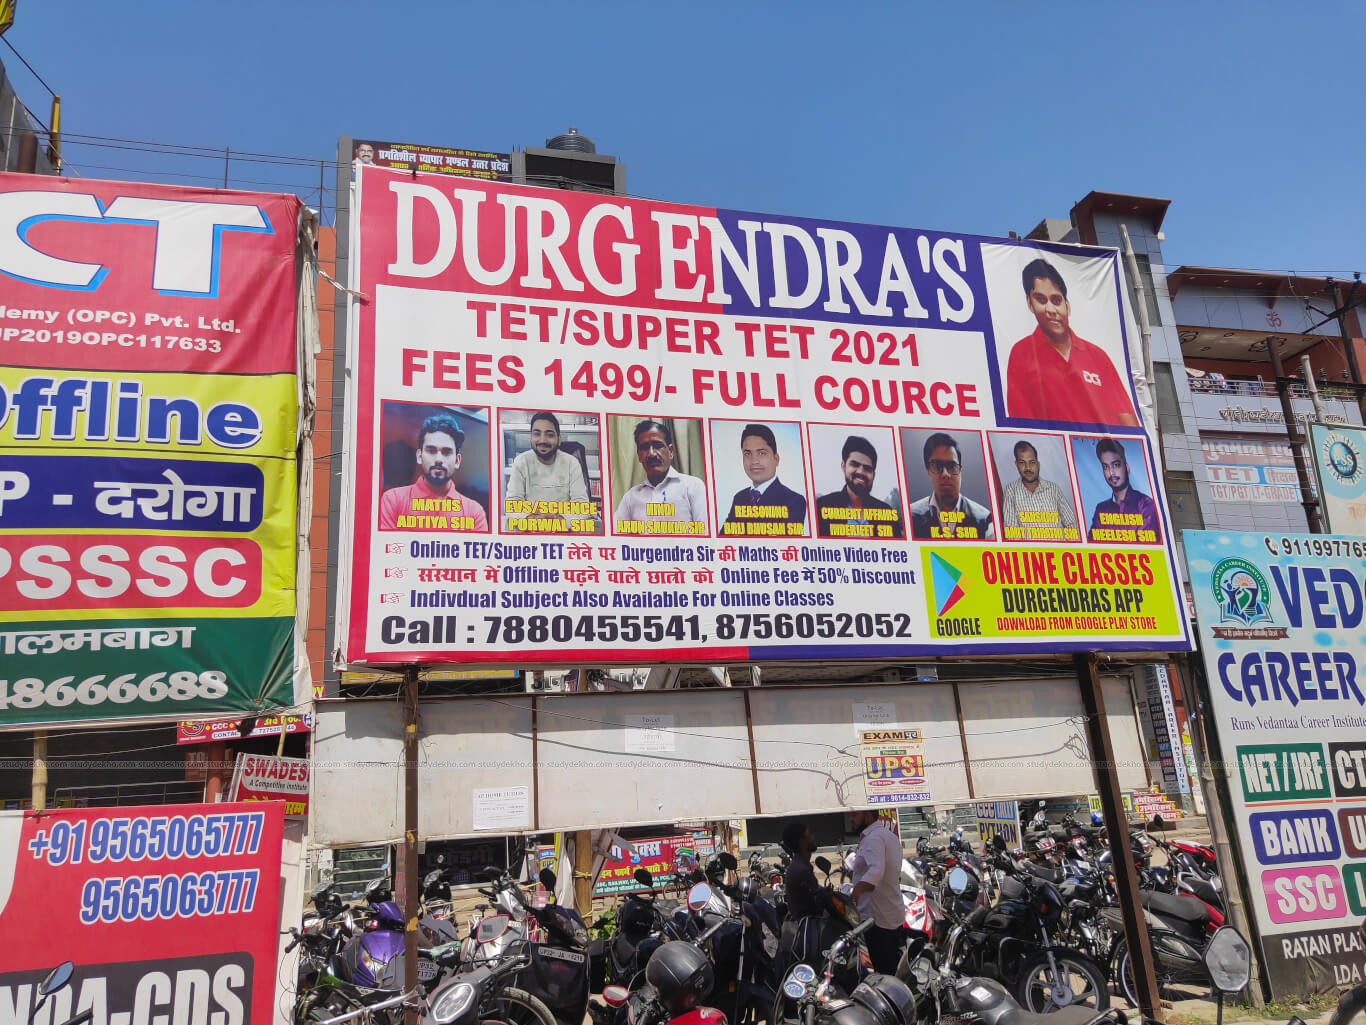 DURGENDRA  CLASSES Logo